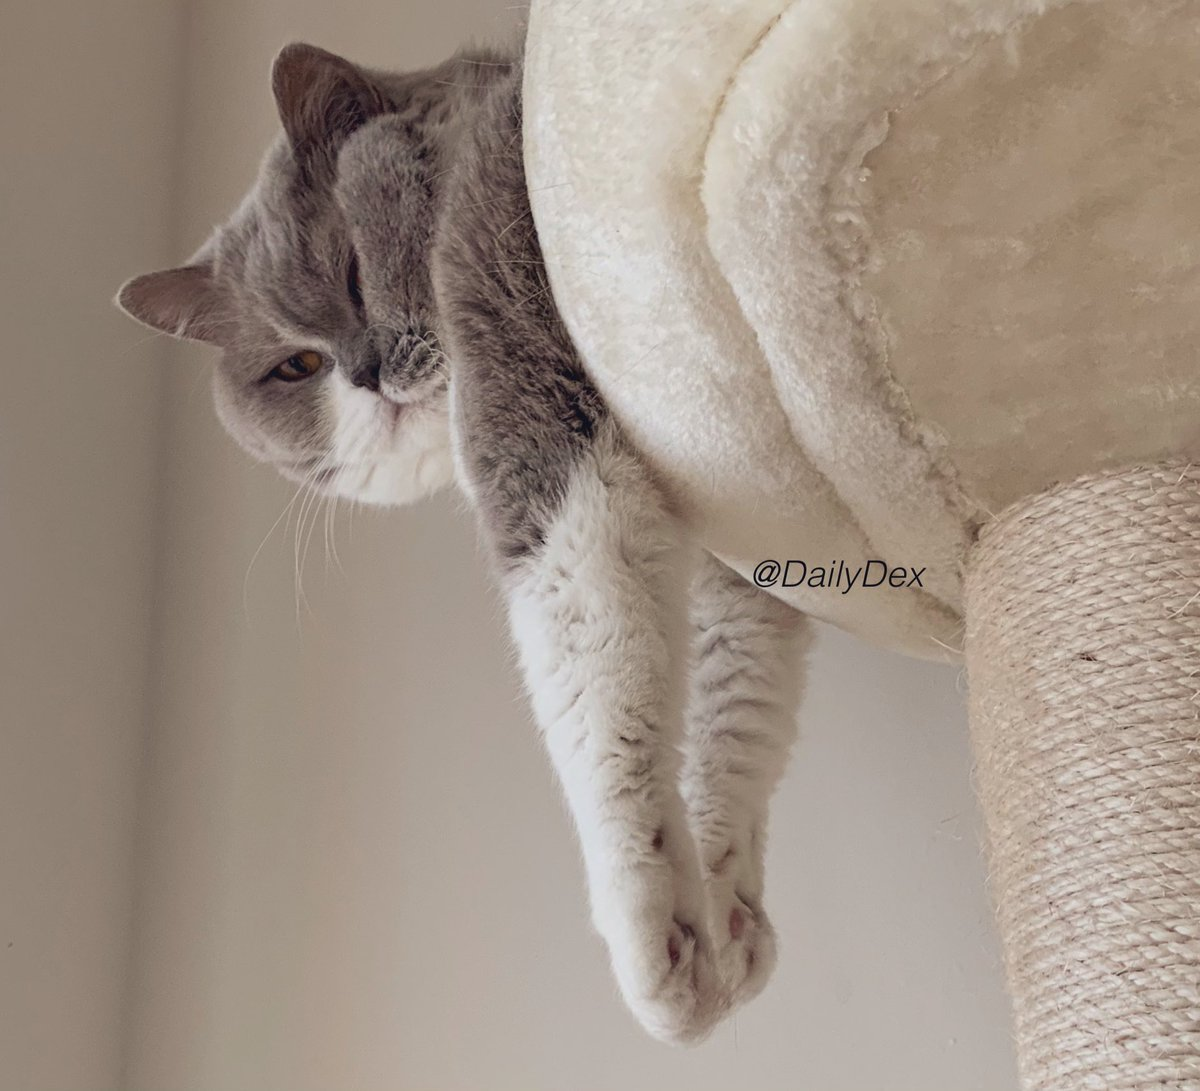 Hanging out in my cat tower this #Caturday 😺💤😺  What are your plans today, friends? 😽 #SaturdayMotivation #CatsOfTwitter #SaturdayVibes #SaturdayThoughts #SaturdayFun #CatLife #Saturday